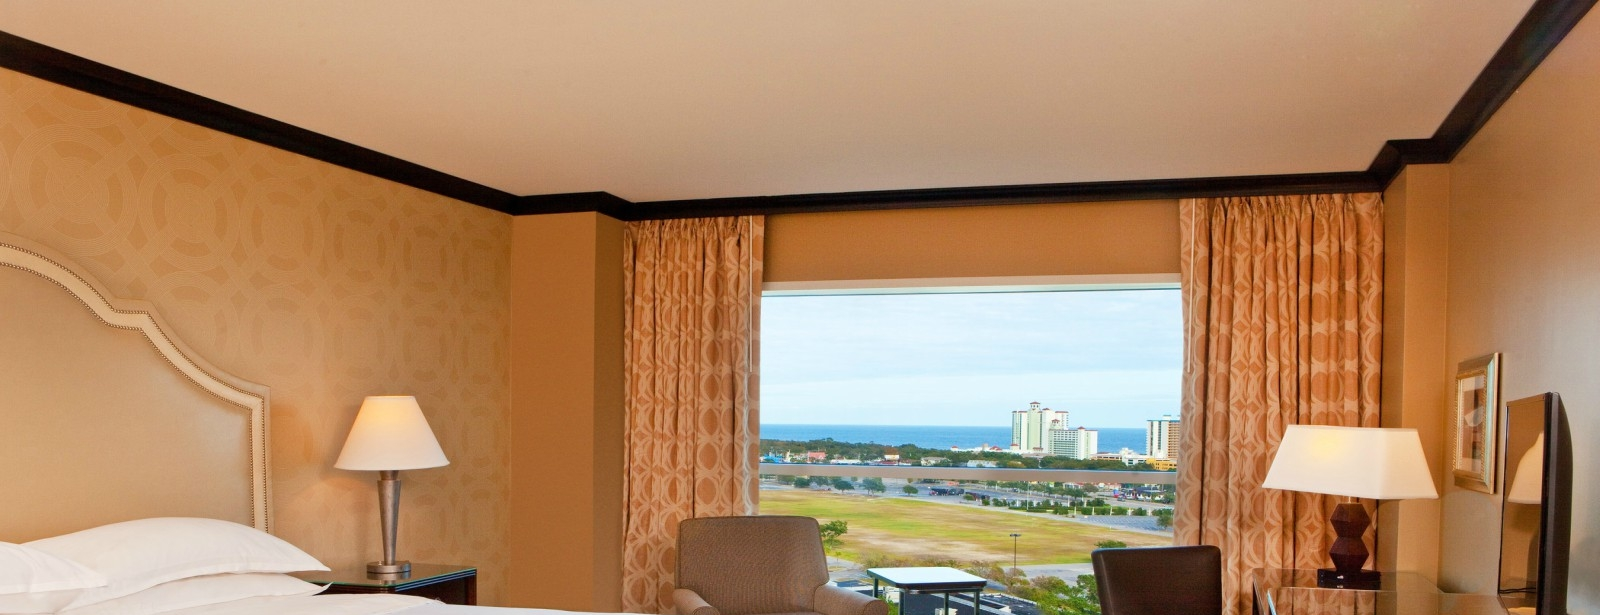 Hospitality Suite Bedroom | Sheraton Myrtle Beach Convention Center Hotel